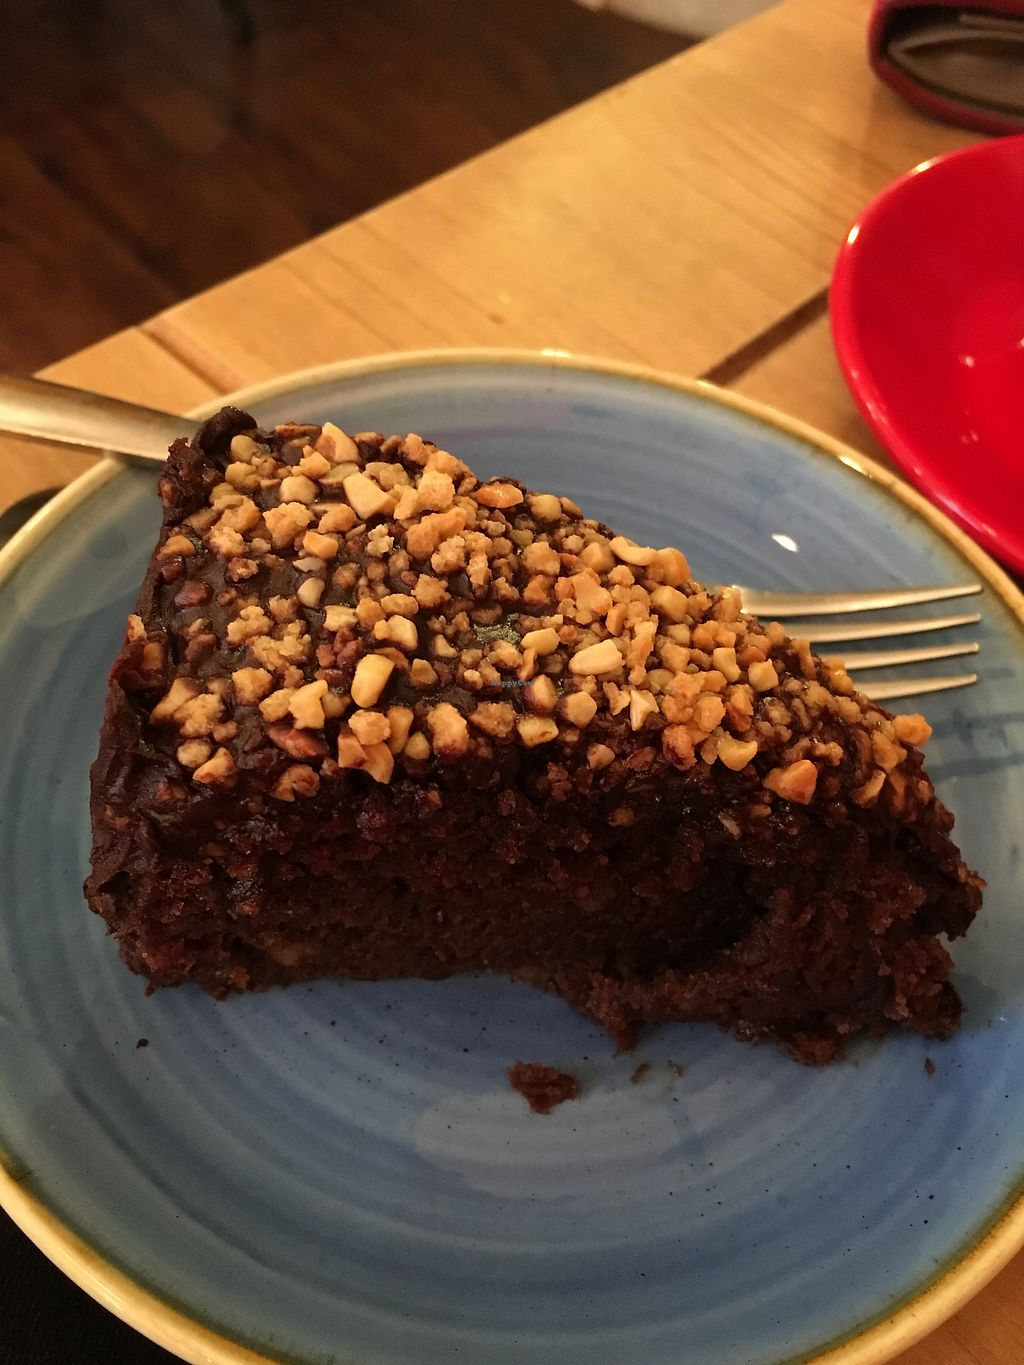 """Photo of Cascara  by <a href=""""/members/profile/clap"""">clap</a> <br/>Amazing chocolate cake in a very nice place  <br/> March 22, 2018  - <a href='/contact/abuse/image/84081/374388'>Report</a>"""